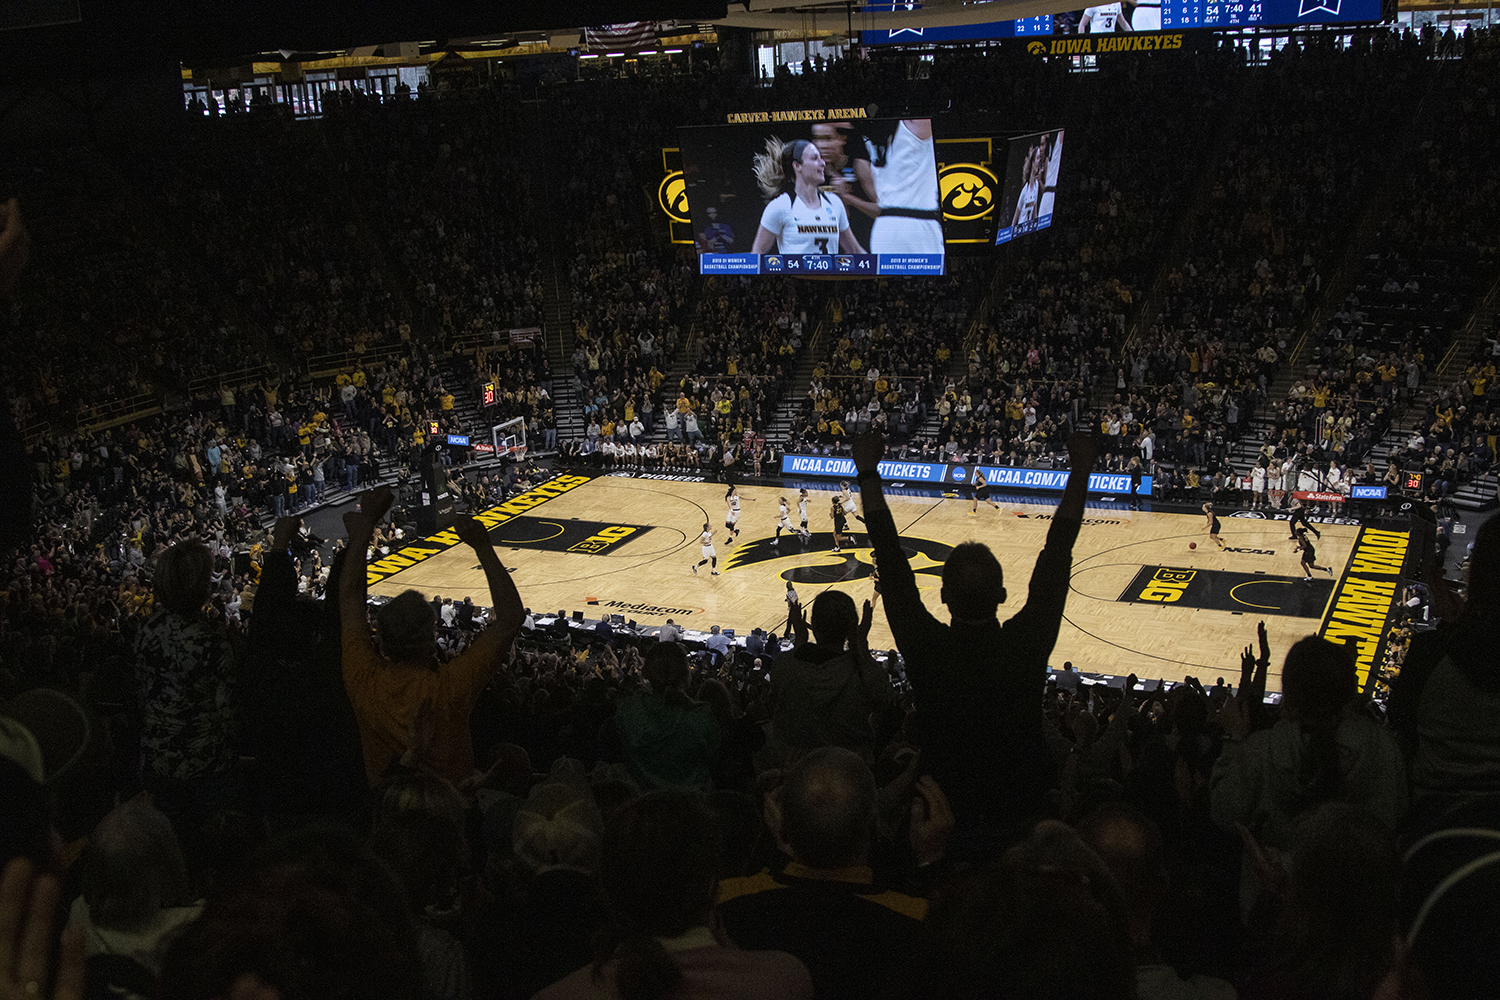 Fans+react+after+Iowa+guard+Makenzie+Meyer+drains+a+3-pointer+during+the+Iowa%2FMizzou+NCAA+Tournament+second+round+women%27s+basketball+game+in+Carver-Hawkeye+Arena++on+Sunday%2C+March+24%2C+2019.+The+Hawkeyes+defeated+the+Tigers%2C+68-52.+%28Lily+Smith%2FThe+Daily+Iowan%29